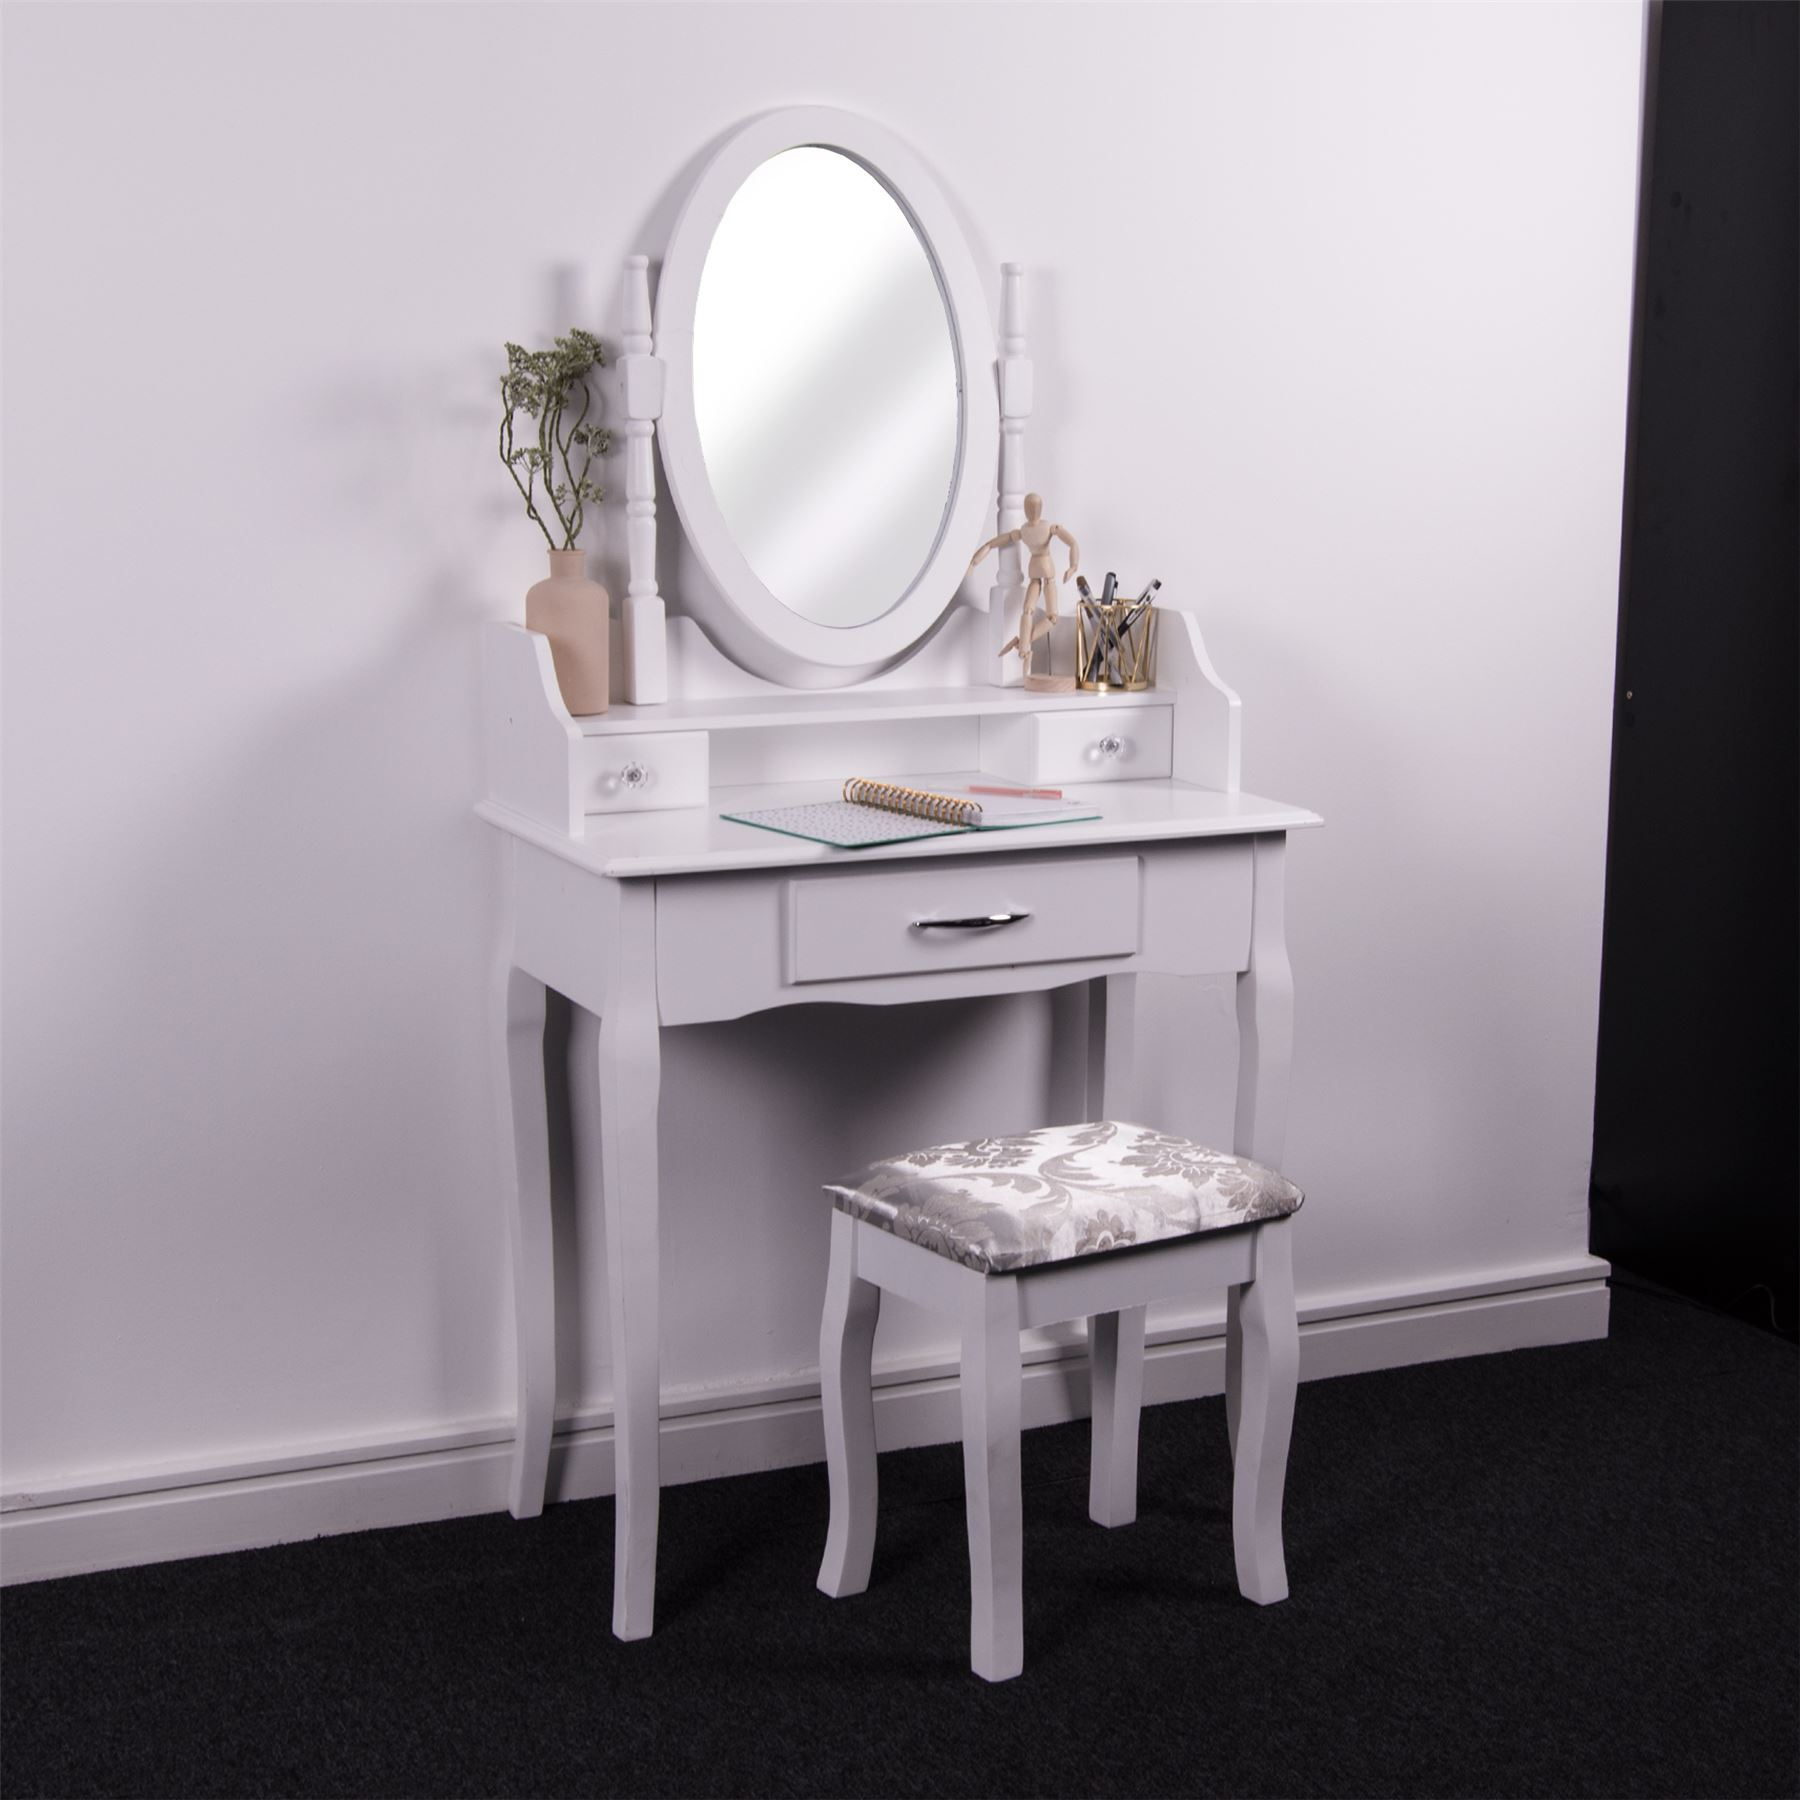 Nishano Dressing Table 3 Drawer White Makeup Vanity Mirror